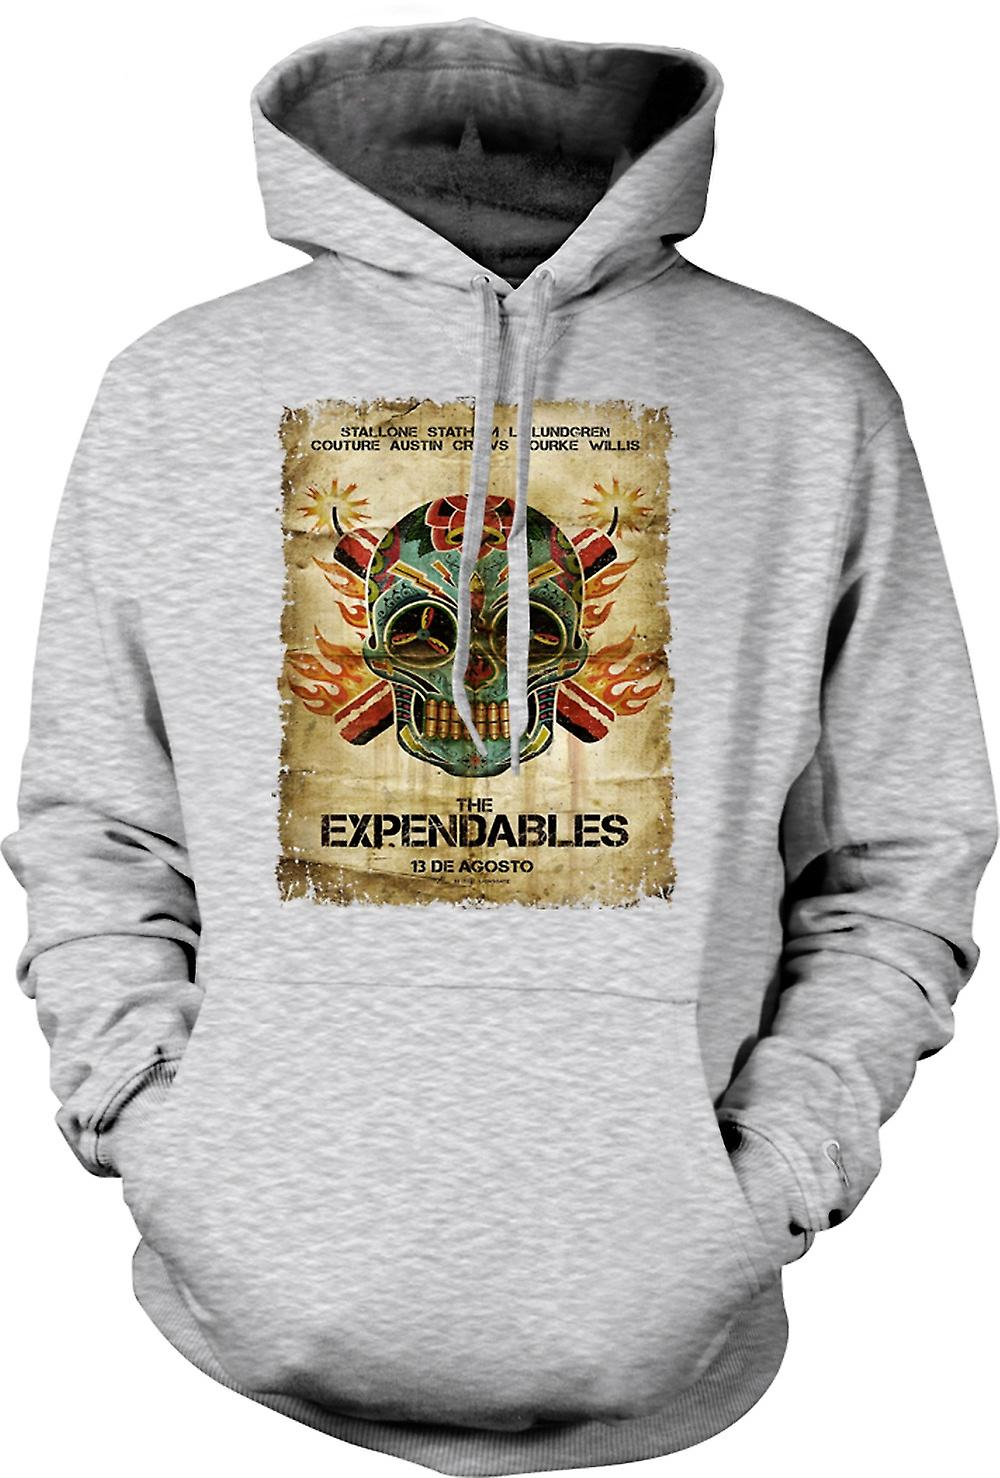 Mens Hoodie - The Expendables - B Movie - Poster